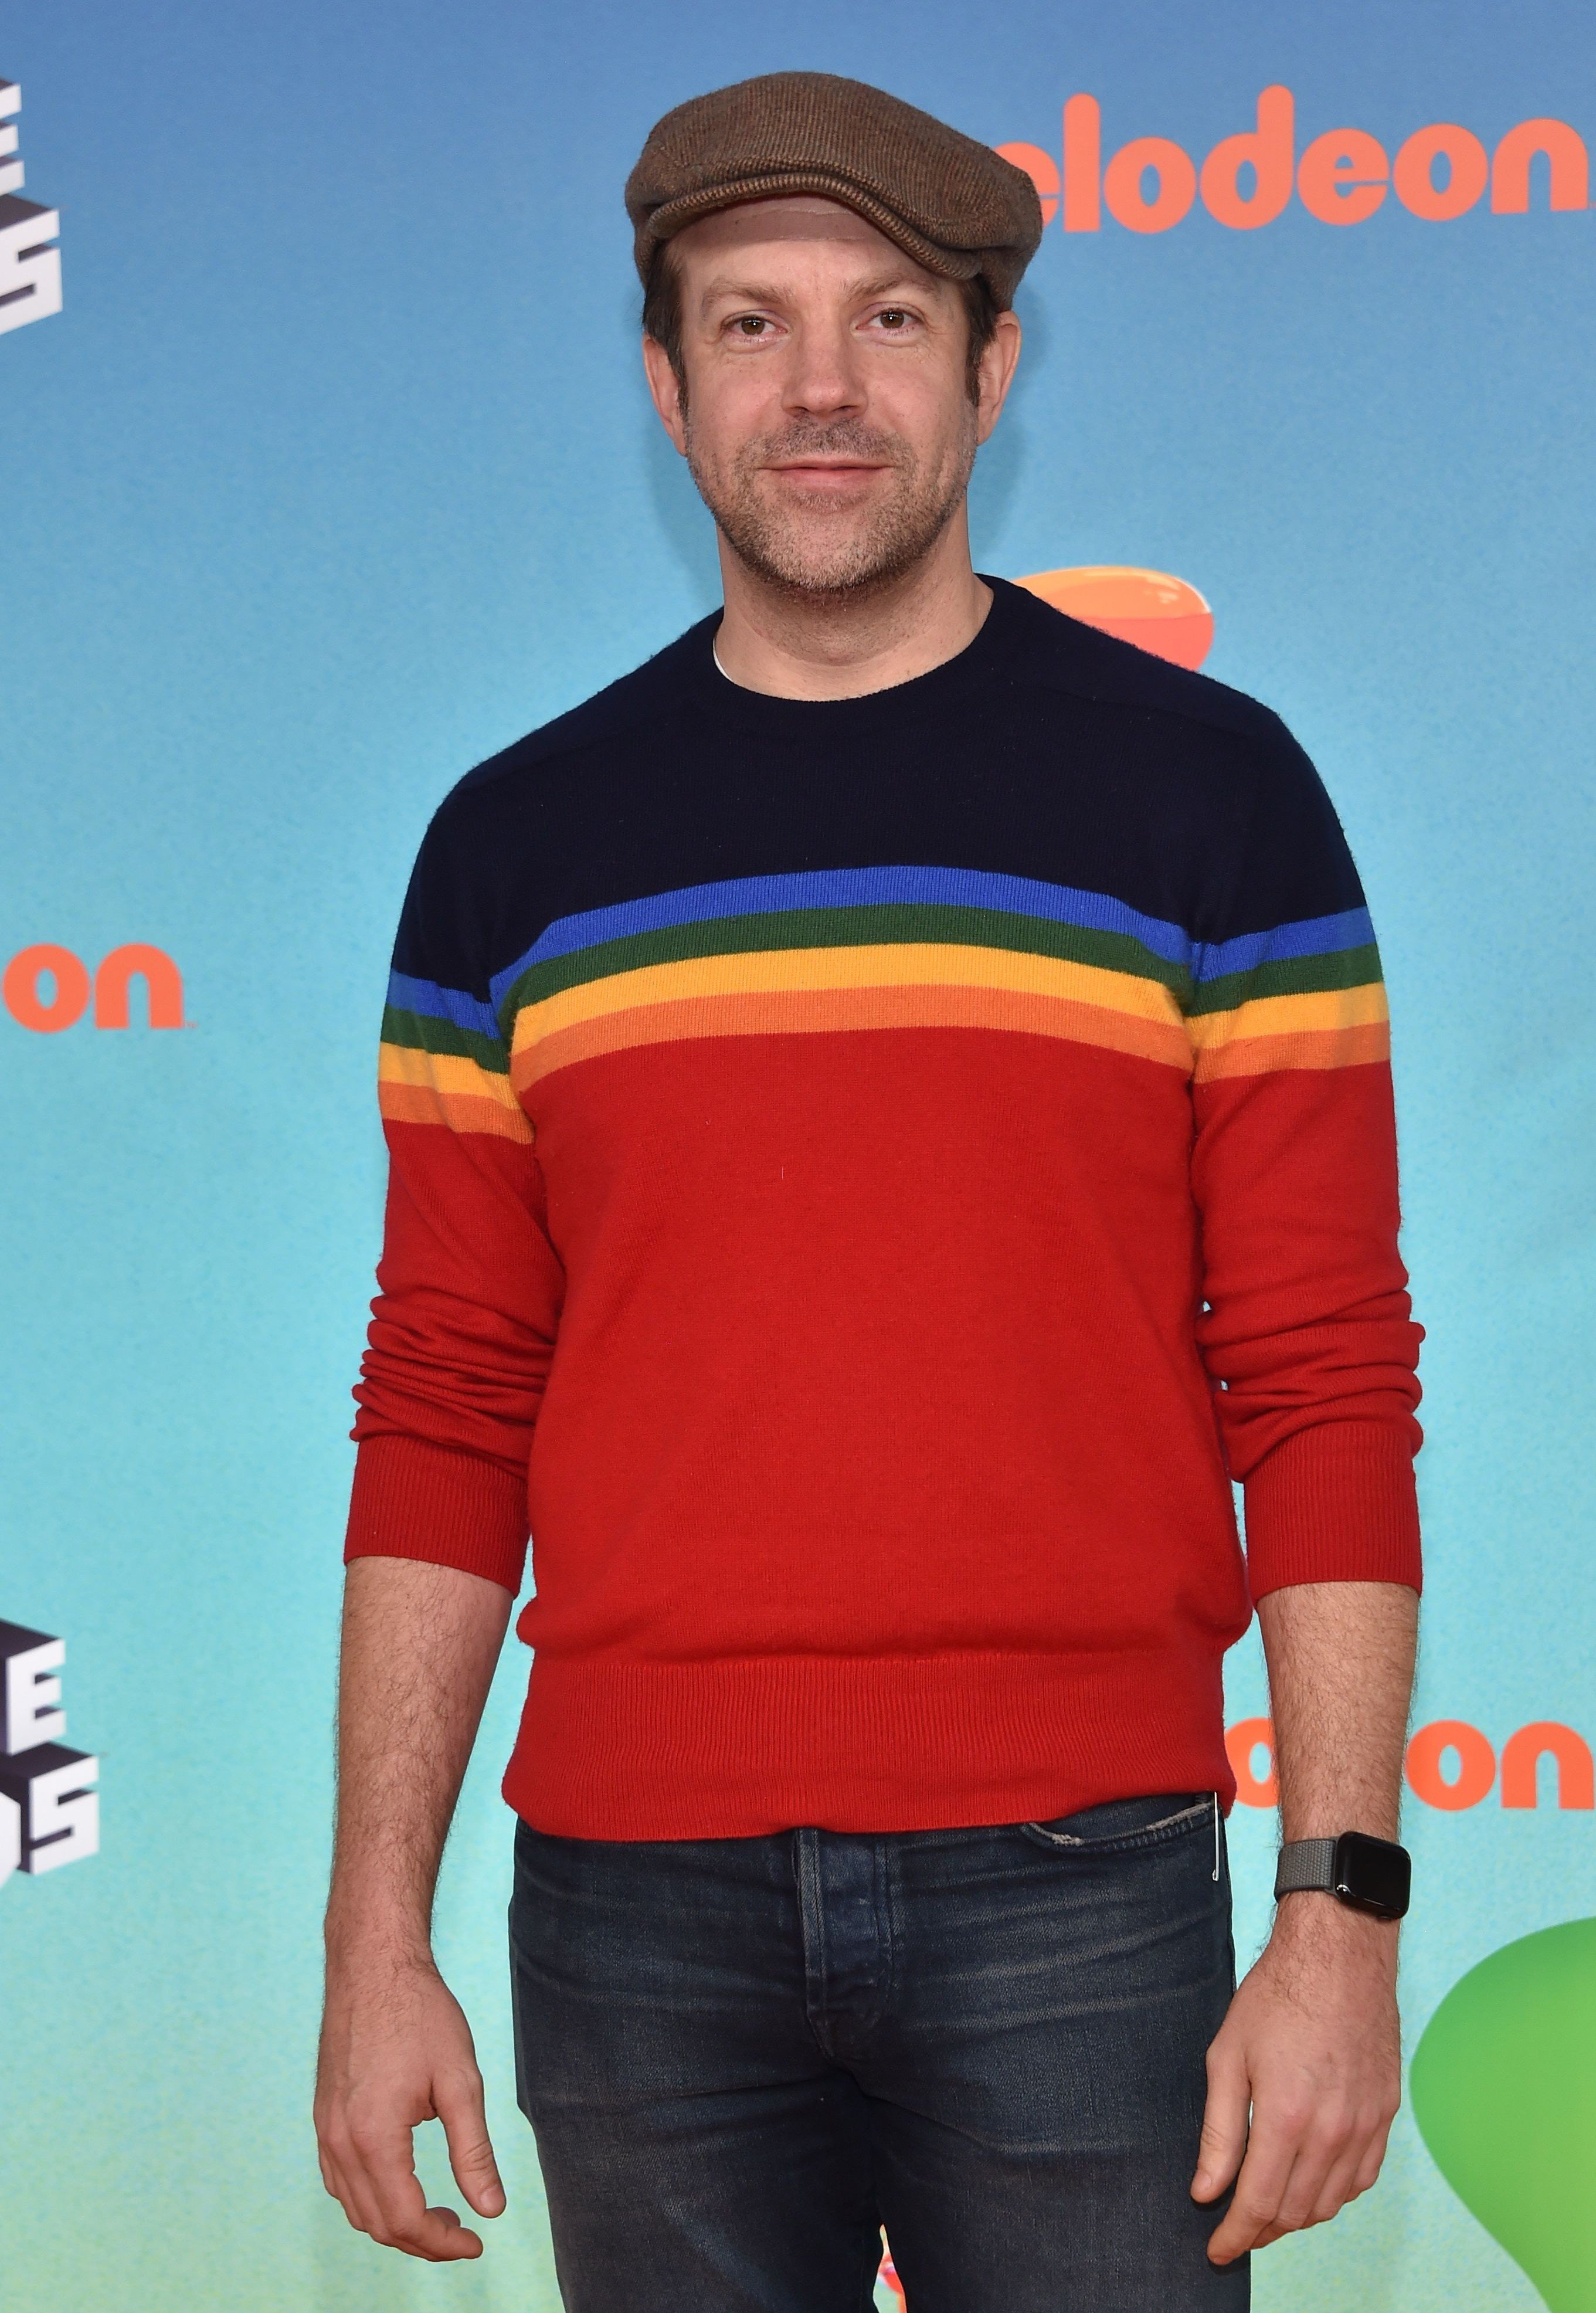 Jason Sudeikis at the 32nd Annual Nickelodeon Kids' Choice Awards in 2019 in Los Angeles | Source: Getty Images